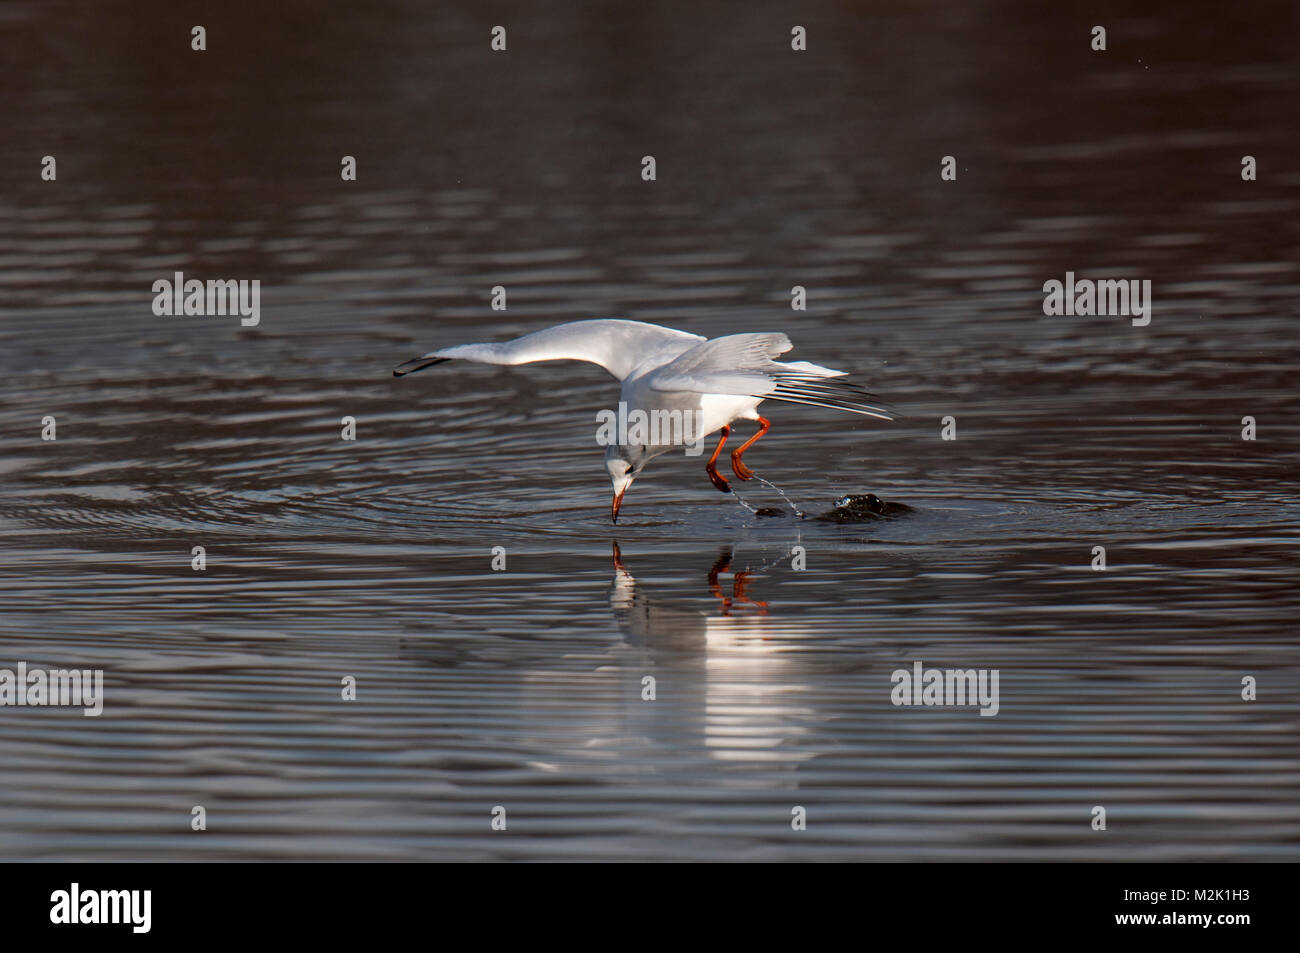 Black-headed gull (Larus ridibundus), adult in winter plumage, fishing by leaping off the water's surface into a Stock Photo